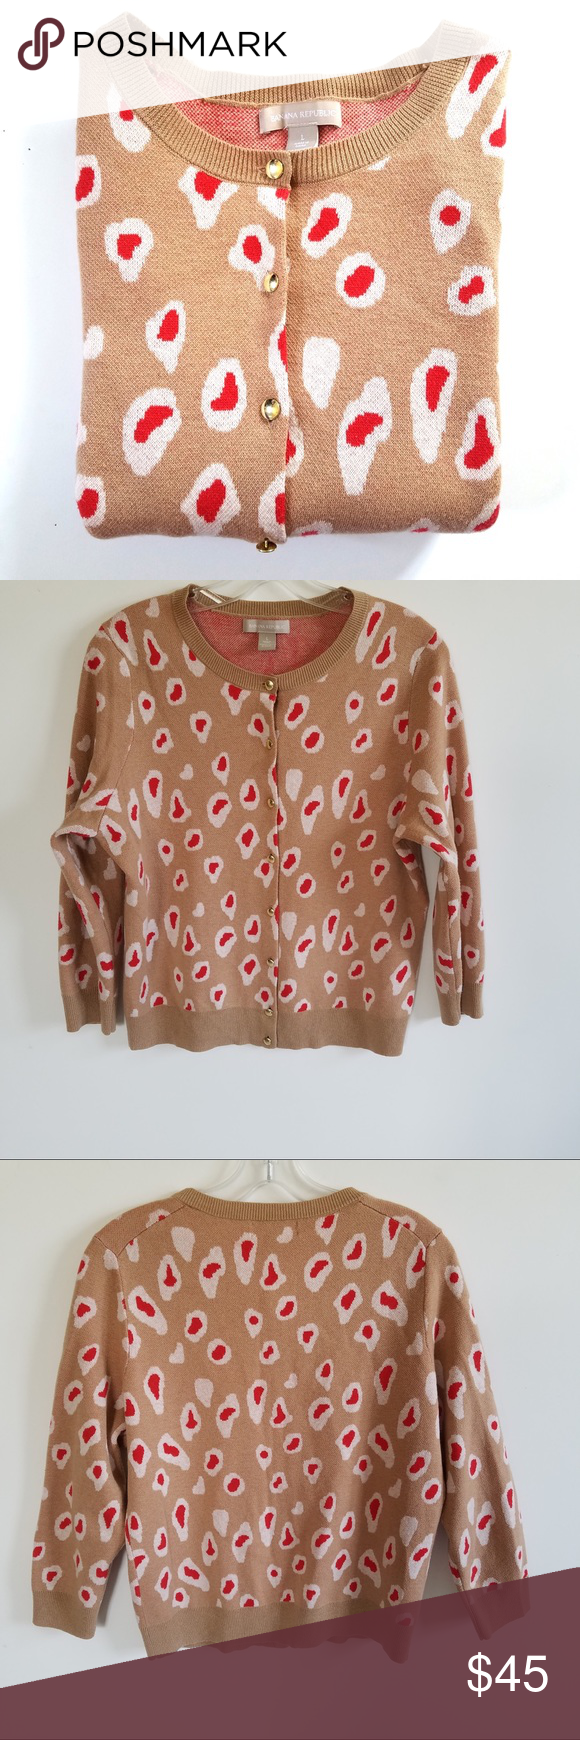 NWOT Banana Republic Leopard Print Cardigan | Banana republic ...